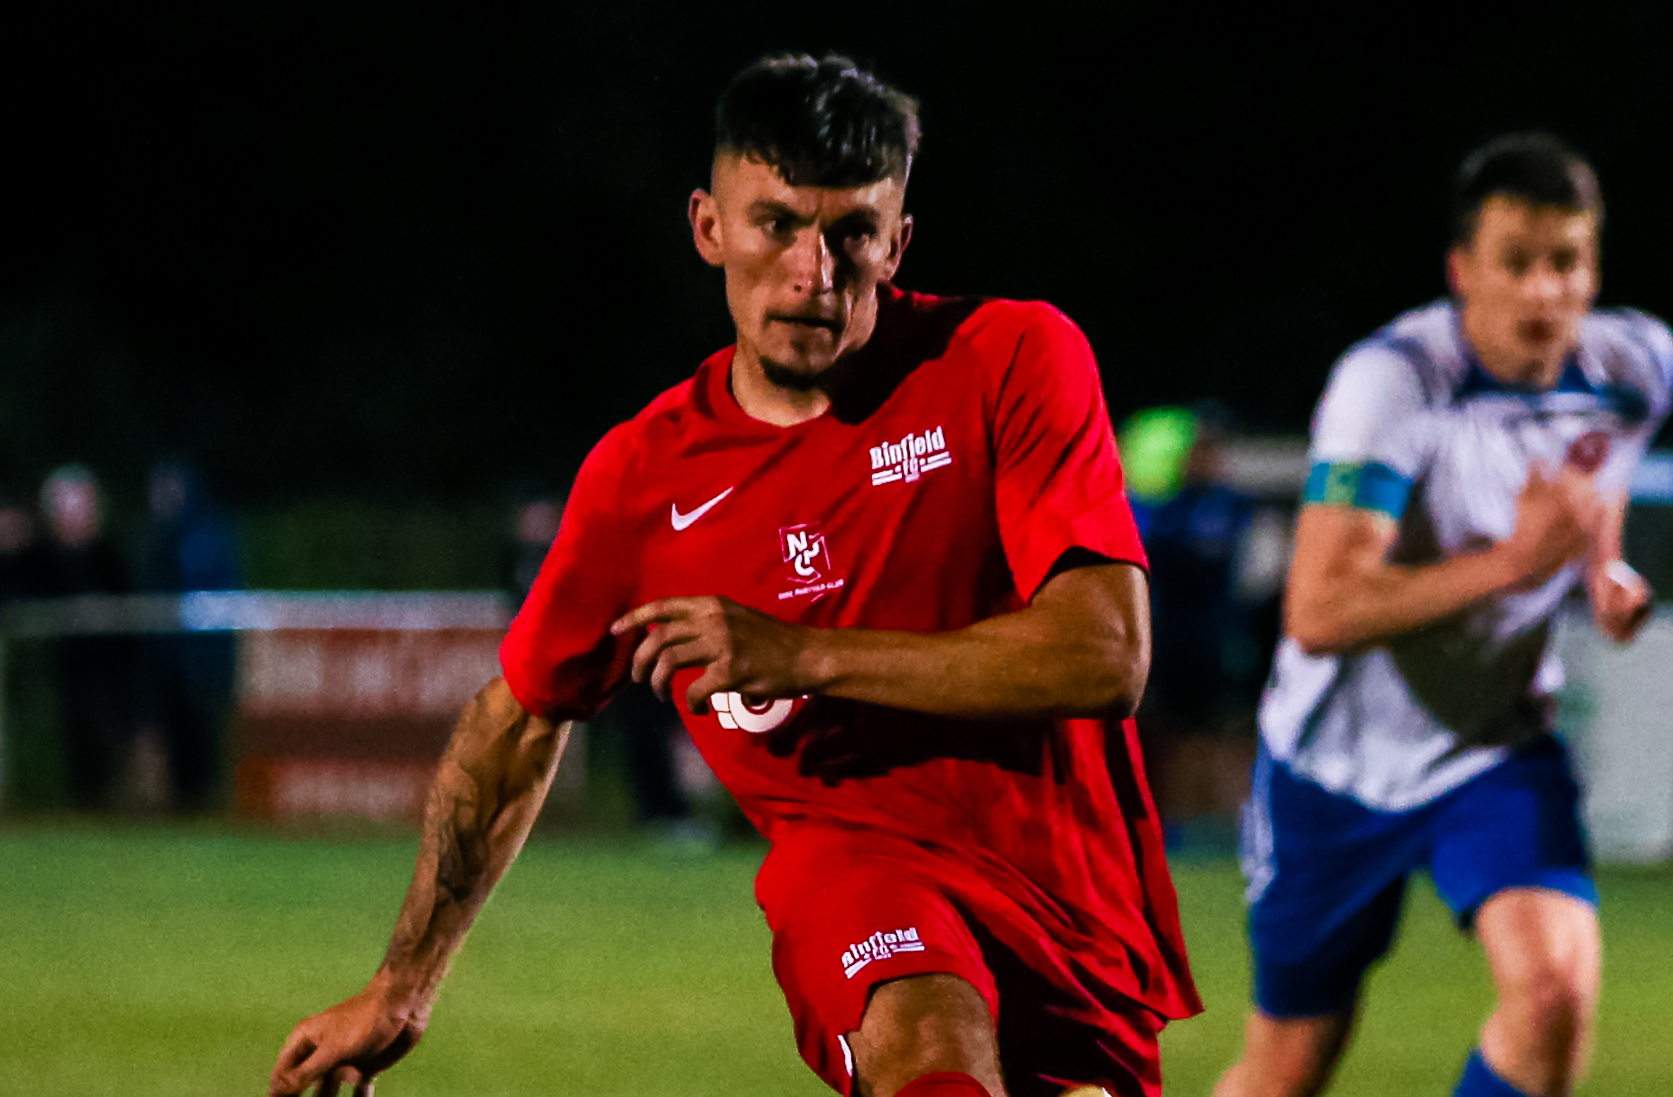 Asa Povey sidelined for Binfield in FA Vase – Team news